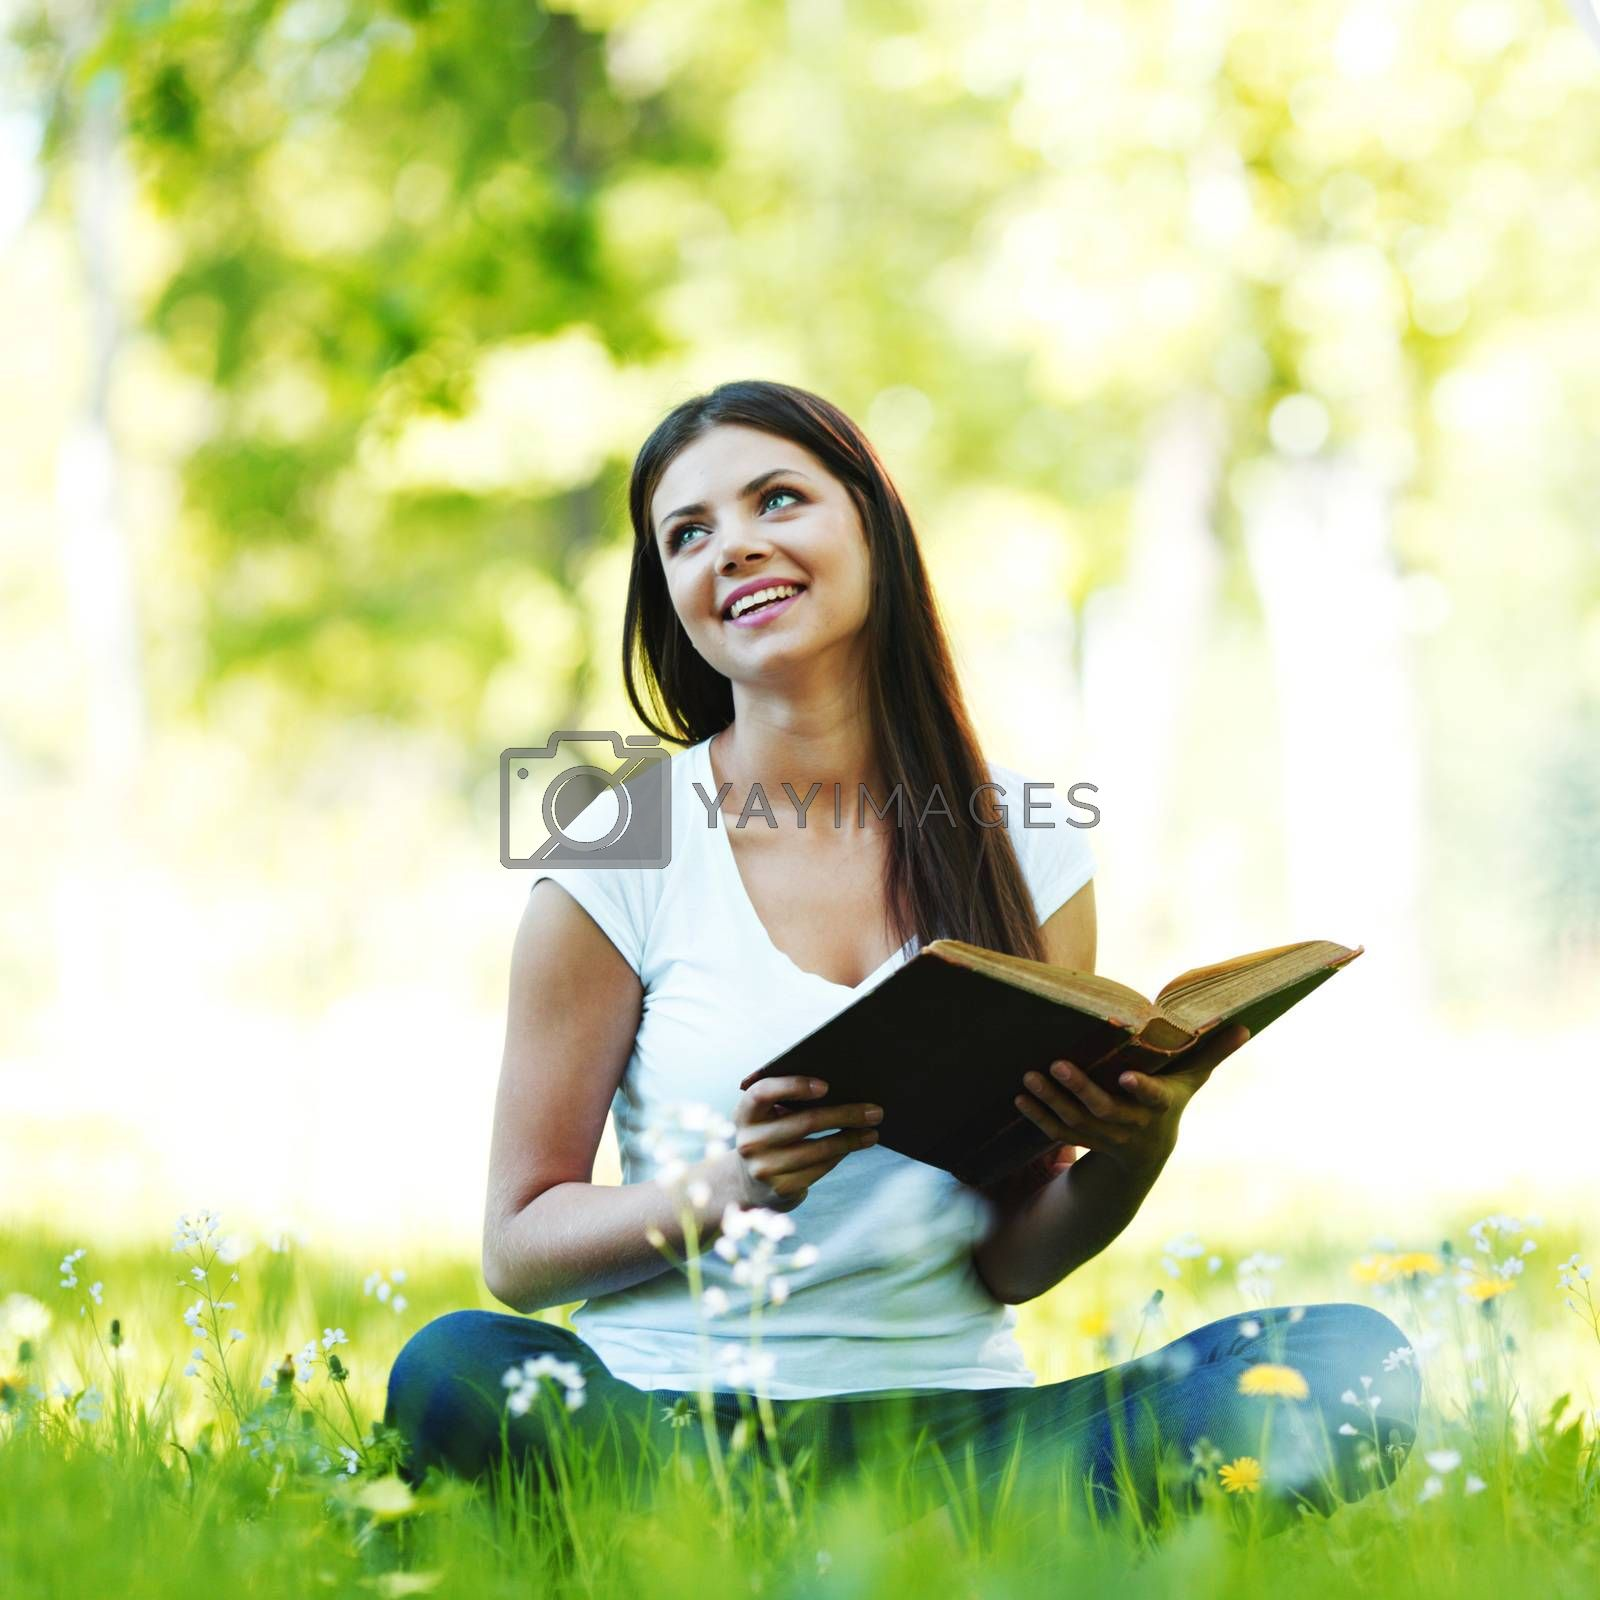 Woman reading book in park outdoors